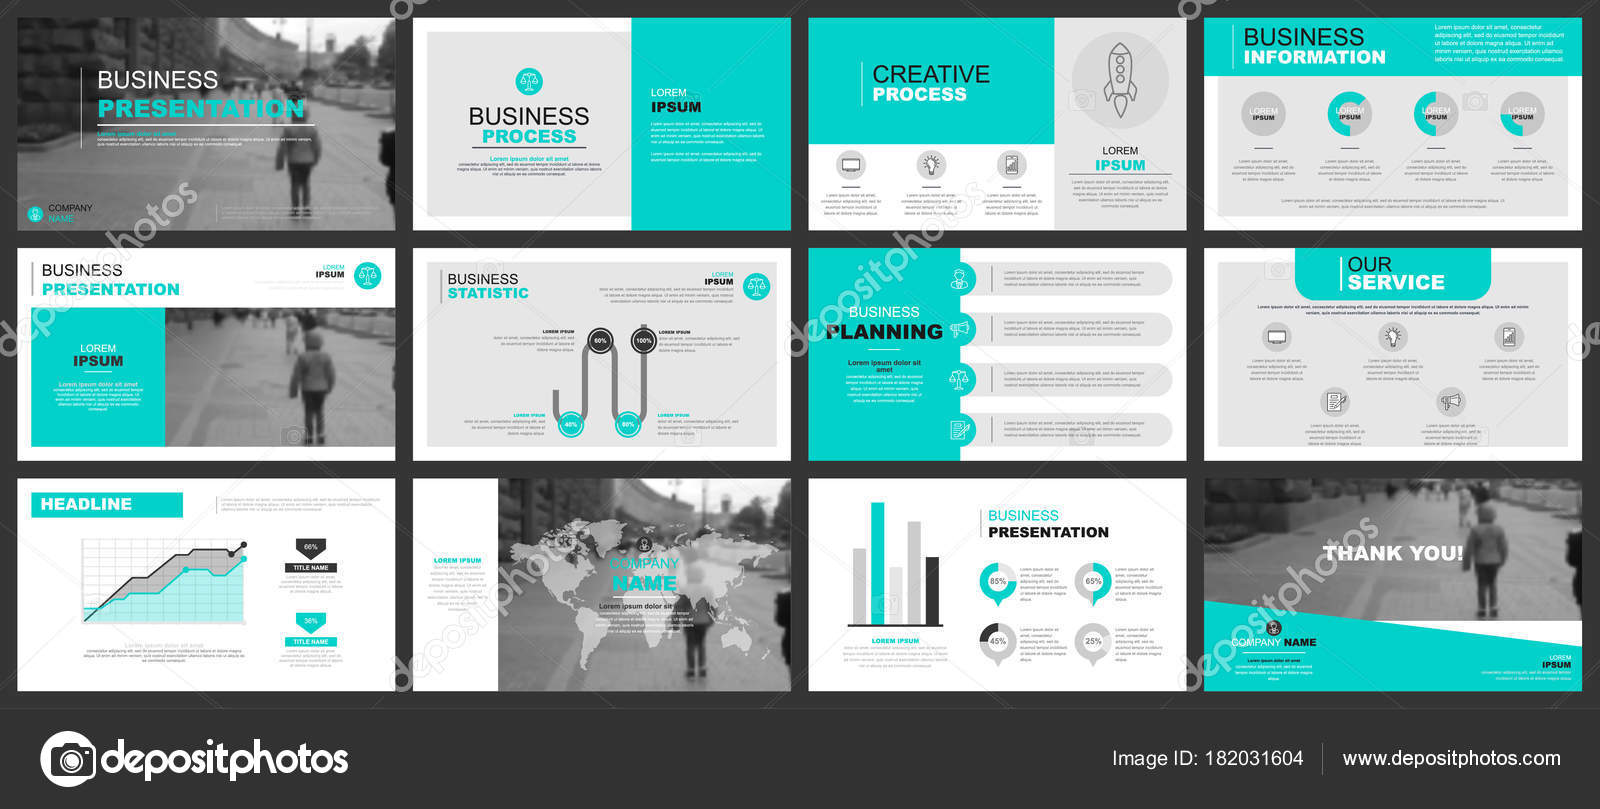 Business presentation slides templates infographic elements can used business presentation slides templates from infographic elements can be used for presentation flyer and leaflet brochure corporate report marketing wajeb Gallery